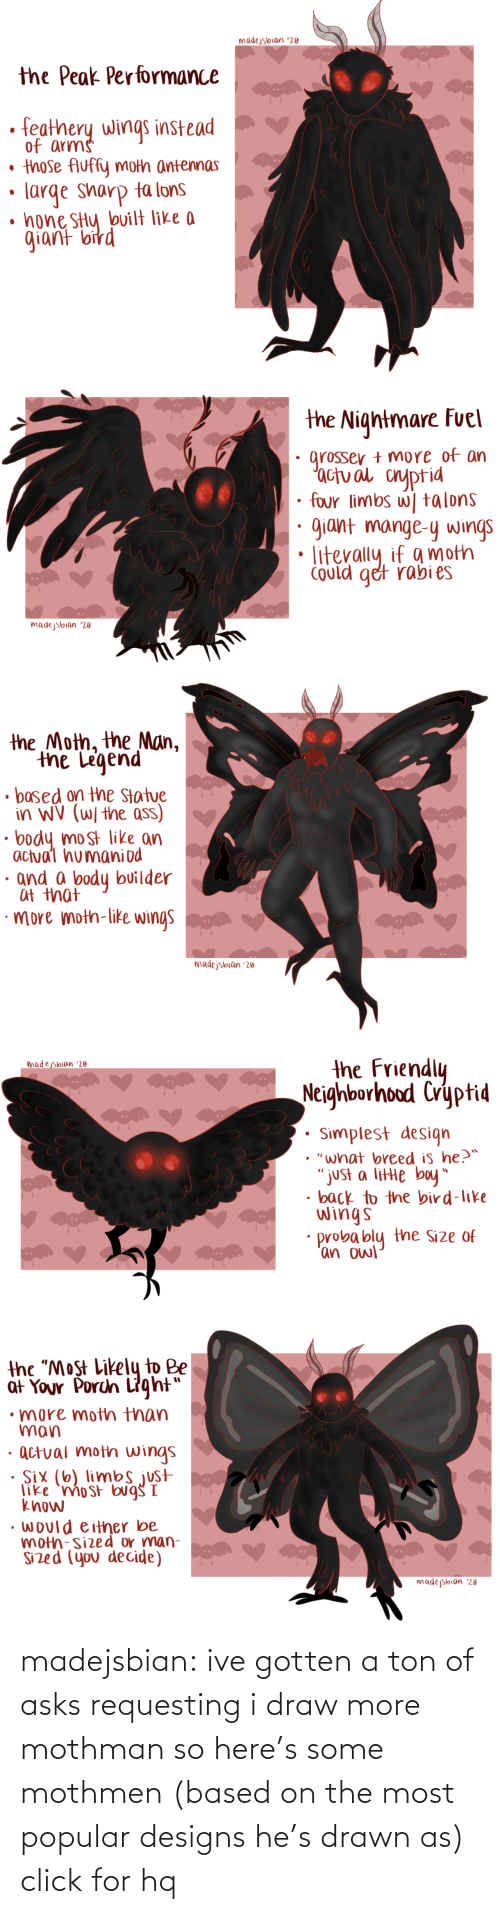 "Performance: madejsbian '20  the Peak Performance  feathery wings instead  of arms  • those Auffy moth antennas  large sharp ta lons  • hone SHy bvilt like a  giant bird   the Nightmare Fuel  grosser + more of an  'actual cnyptid  four limbs w| talons  giant mange-y wings  Could get rabi es  madejsbian '20   the Moth, the Man,  the Legend  • based on the Statue  in WV (W/ the ass)  body most like an  actual humaniod  · and a body builder  at that  ·more moth-like wings  madejsbian '20   the Friendly  Neighborhood Cryptid  madejsbian '20  Simplest design  • ""what breed is he?™  ""just a litte boy""  • back to the bird-like  wings  probably the Size of  'an owl   the ""Most Likely to Be  at Your Porch Light""  •more moth than  man  · actual moth wings  · Six (6) limbs just  like 'mo st bug I  know  • would either be  moth-sized or man-  Sized (you decide)  madejsbian '20 madejsbian: ive gotten a ton of asks requesting i draw more mothman so here's some mothmen (based on the most popular designs he's drawn as)